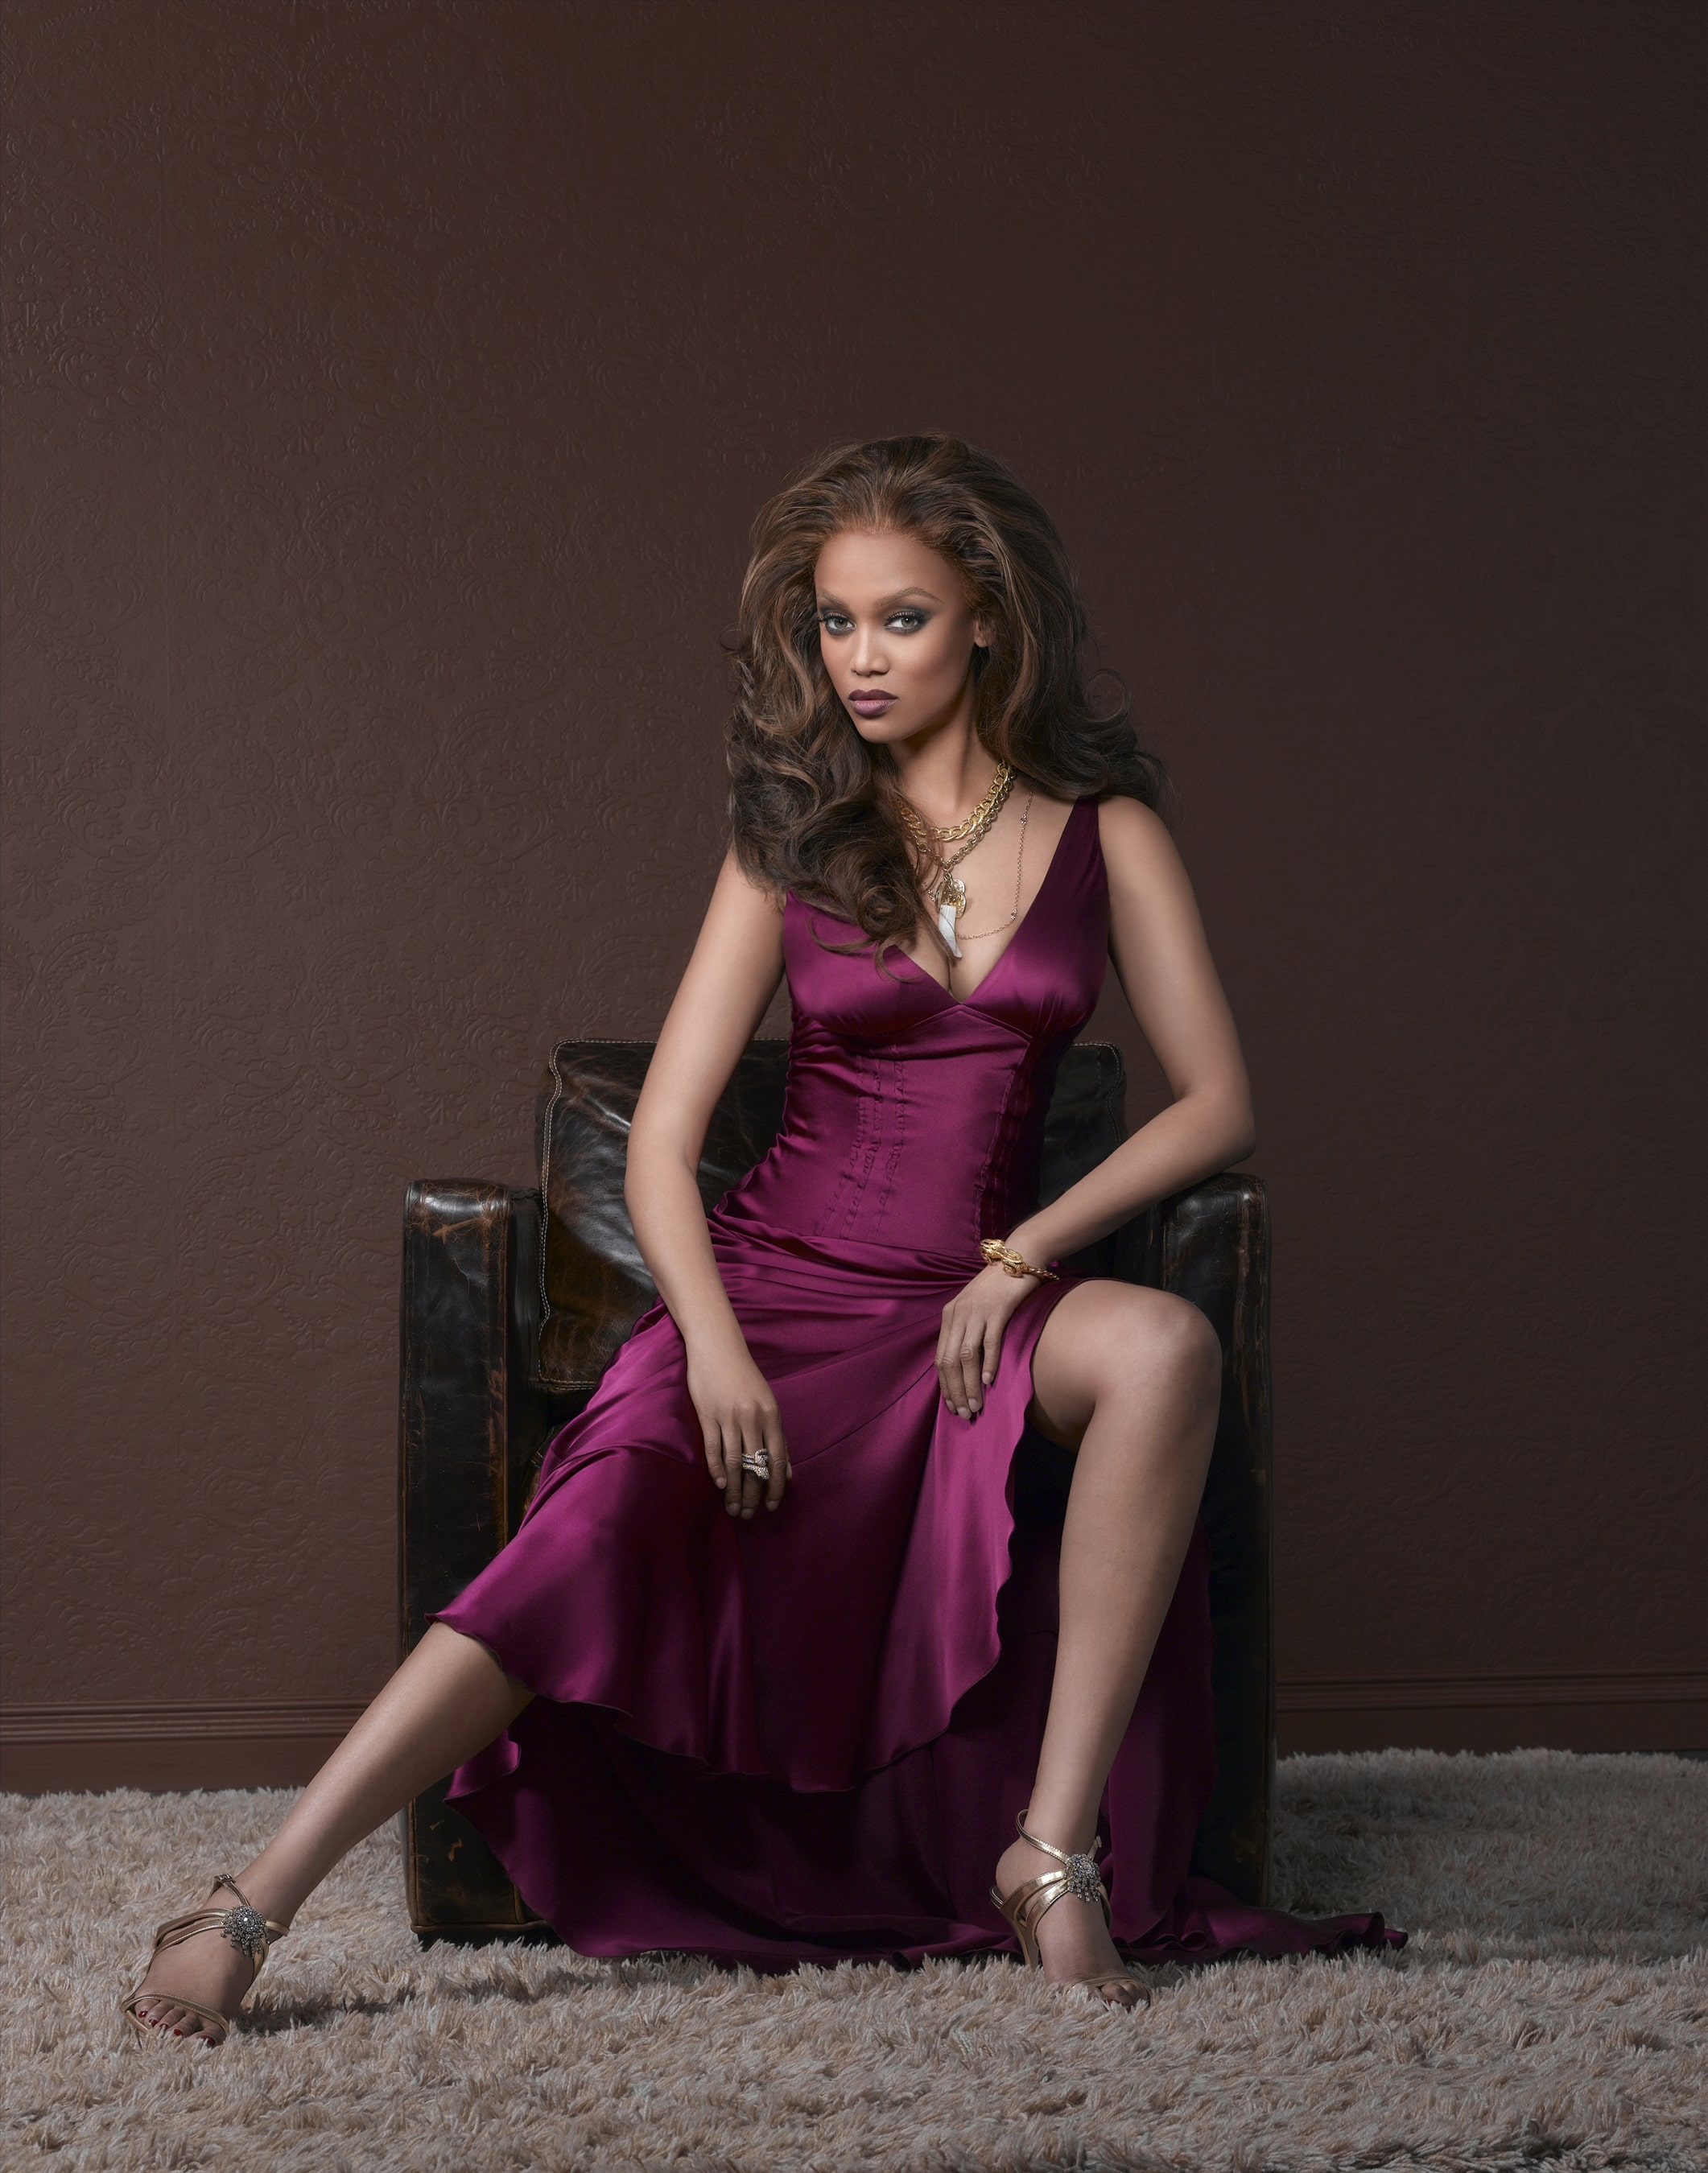 tyra banks beautiful feet pics